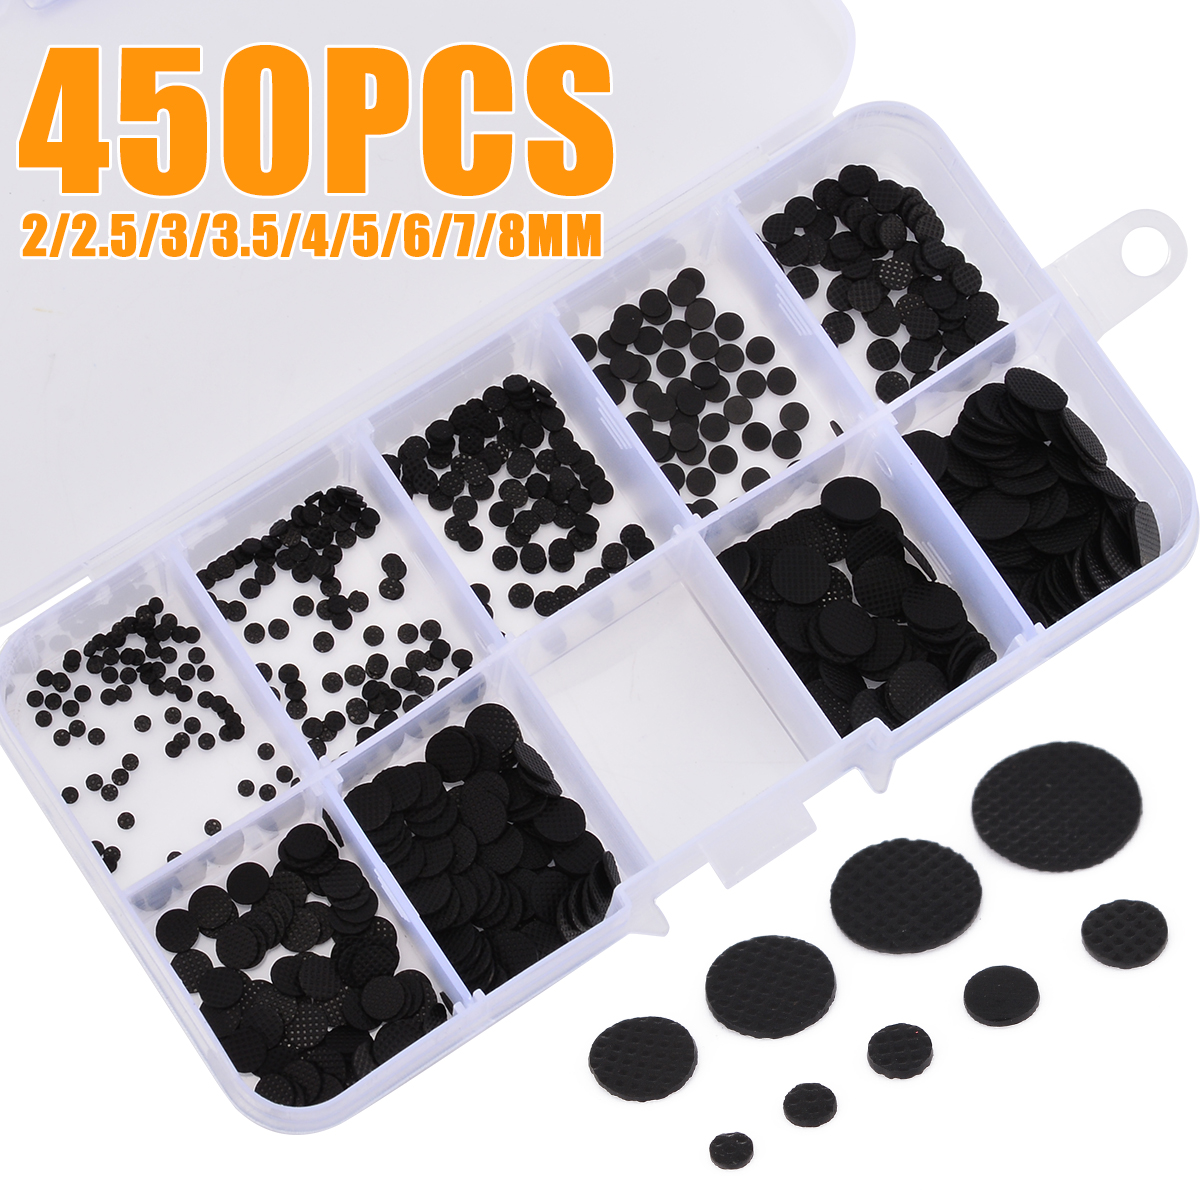 450pcs/box 2-8mm Different Sizes Conductive Rubber Pads Keypad Repair Kit For IR Remote Control Conductive Rubber Buttons